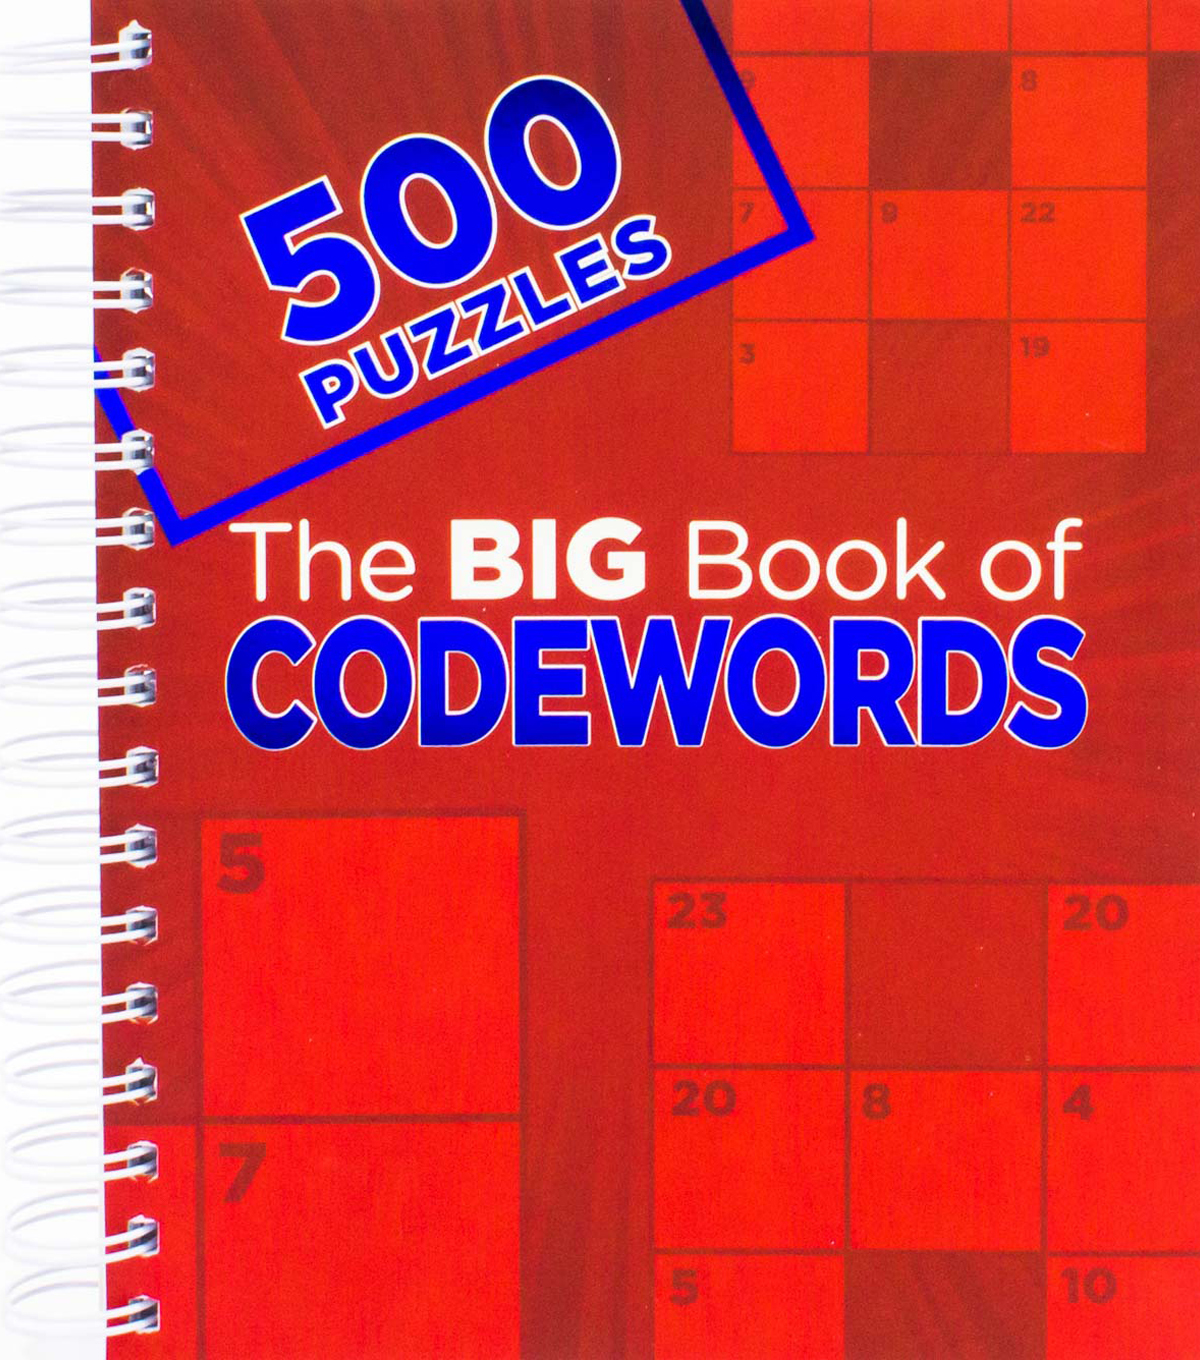 The Big Book of Codewords-500 Puzzles